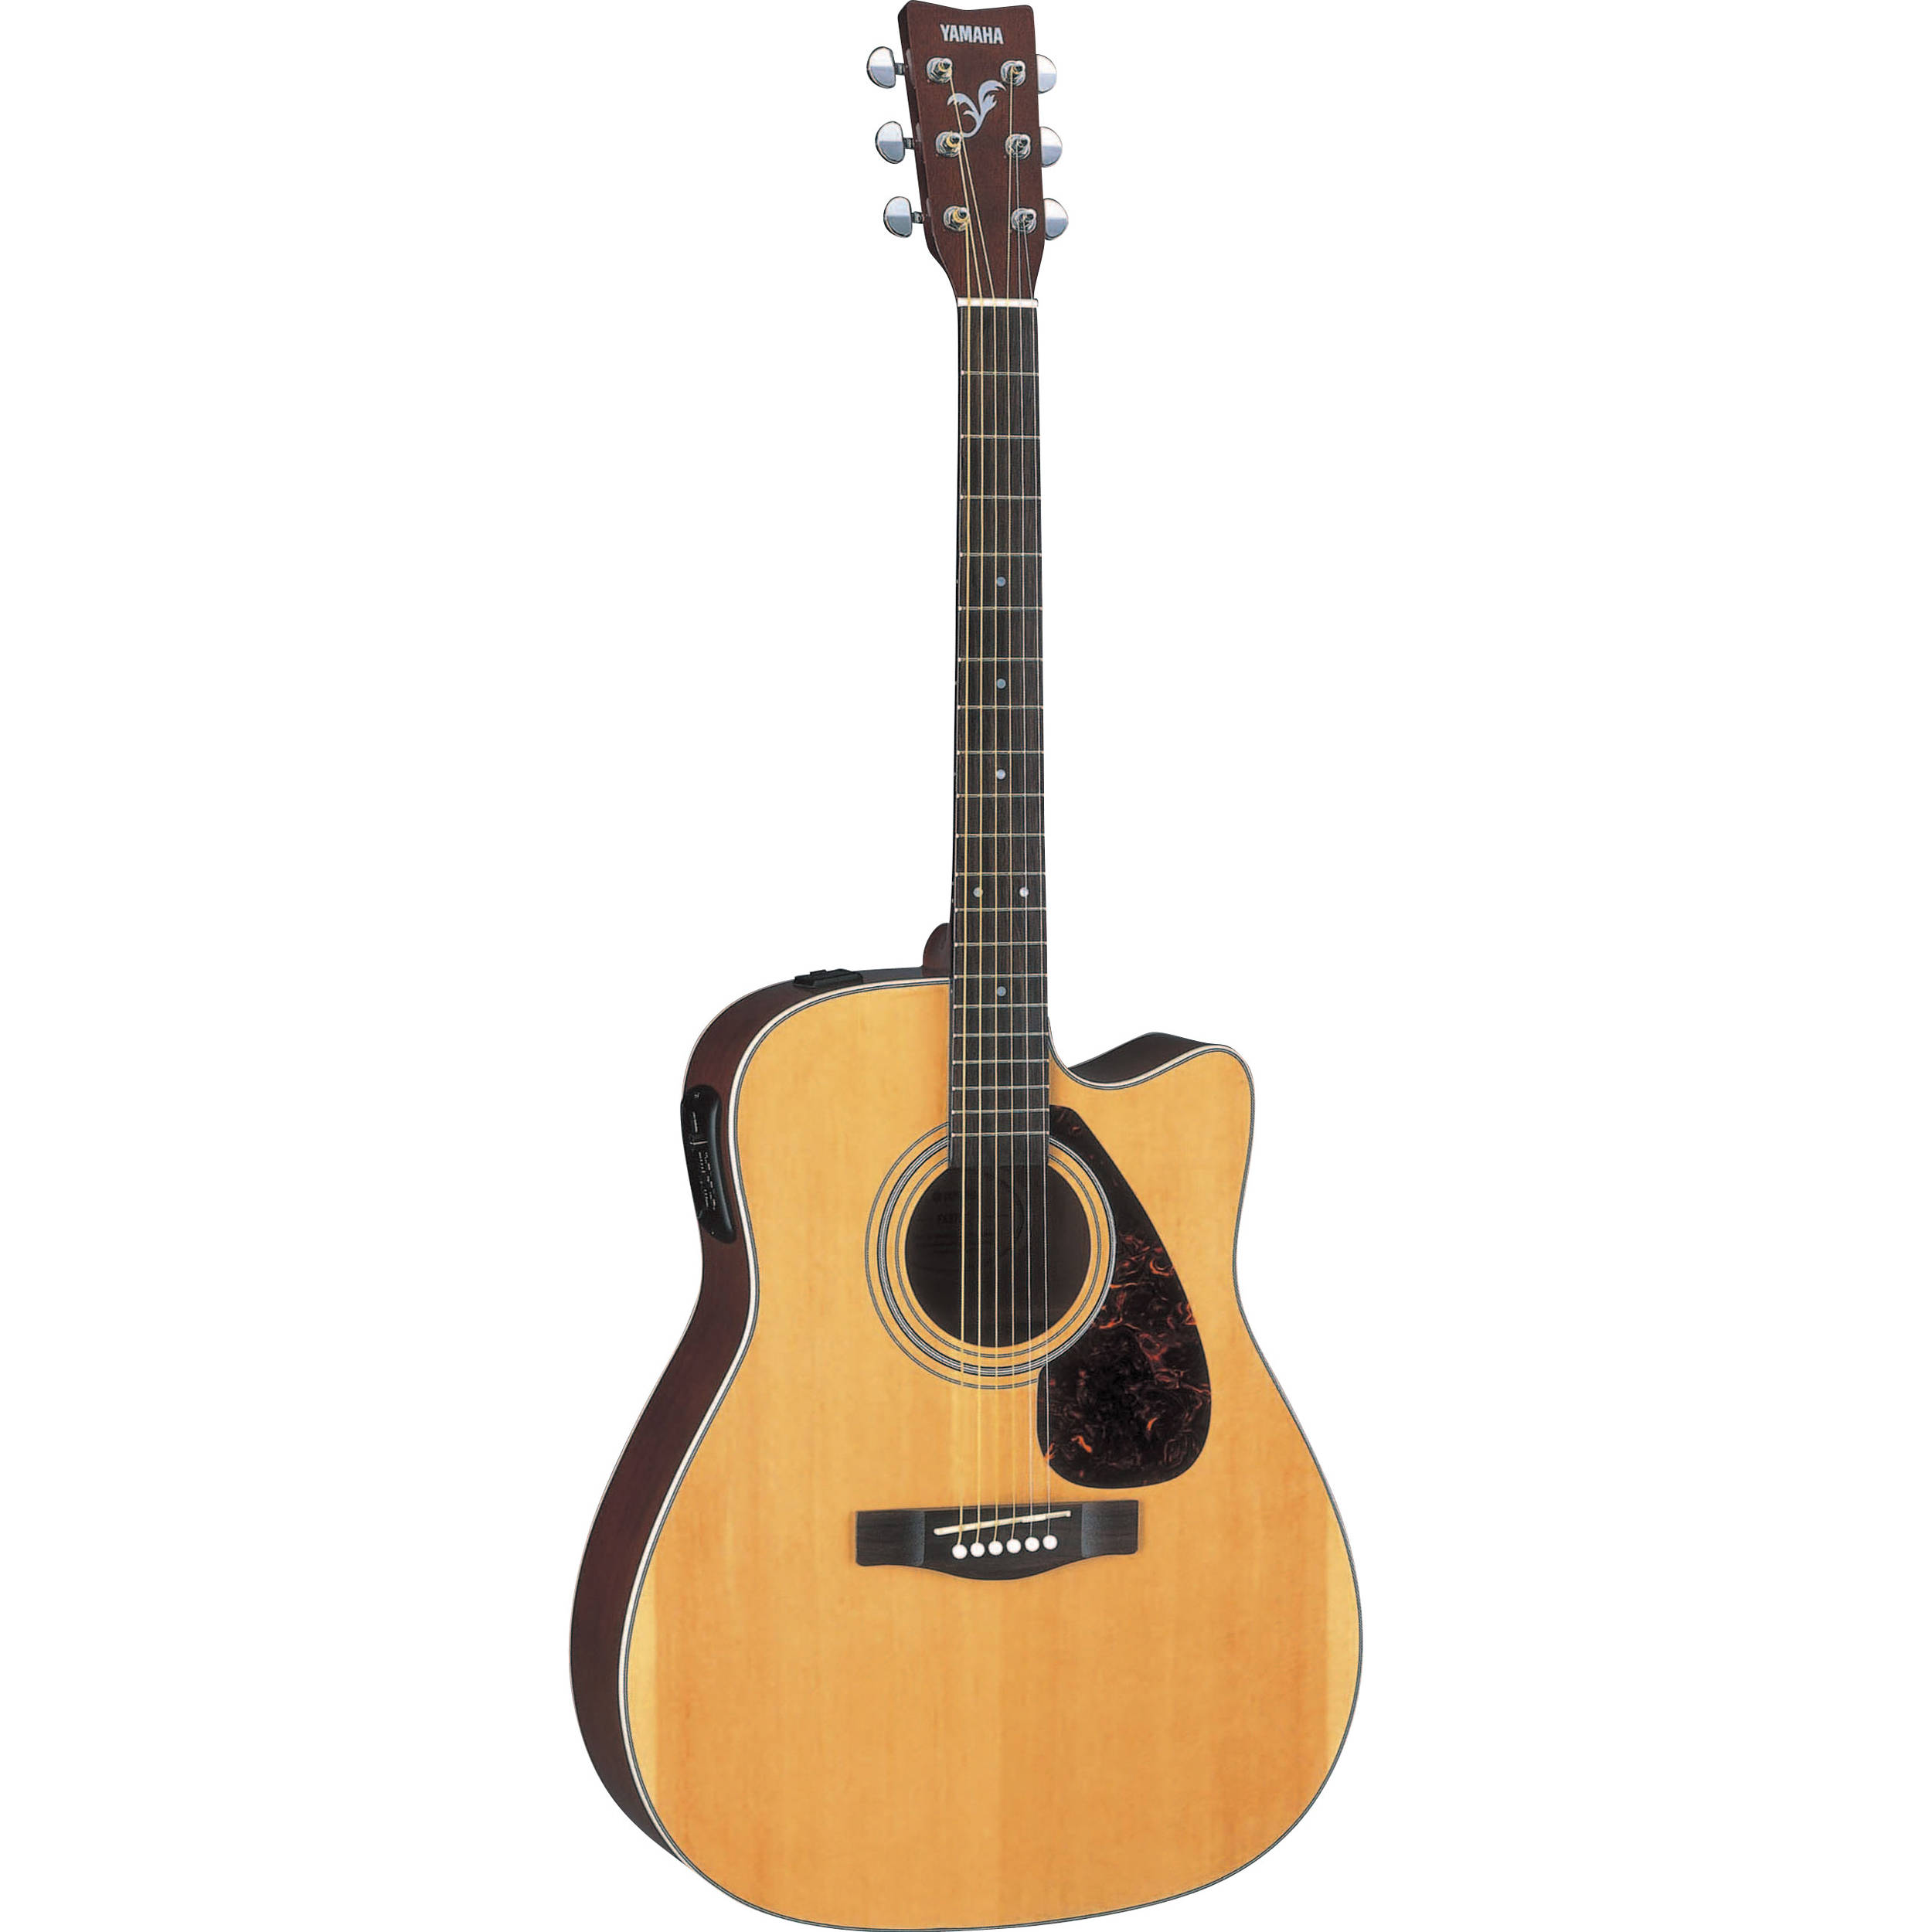 yamaha fx370c hc acoustic electric cutaway guitar fx370c. Black Bedroom Furniture Sets. Home Design Ideas